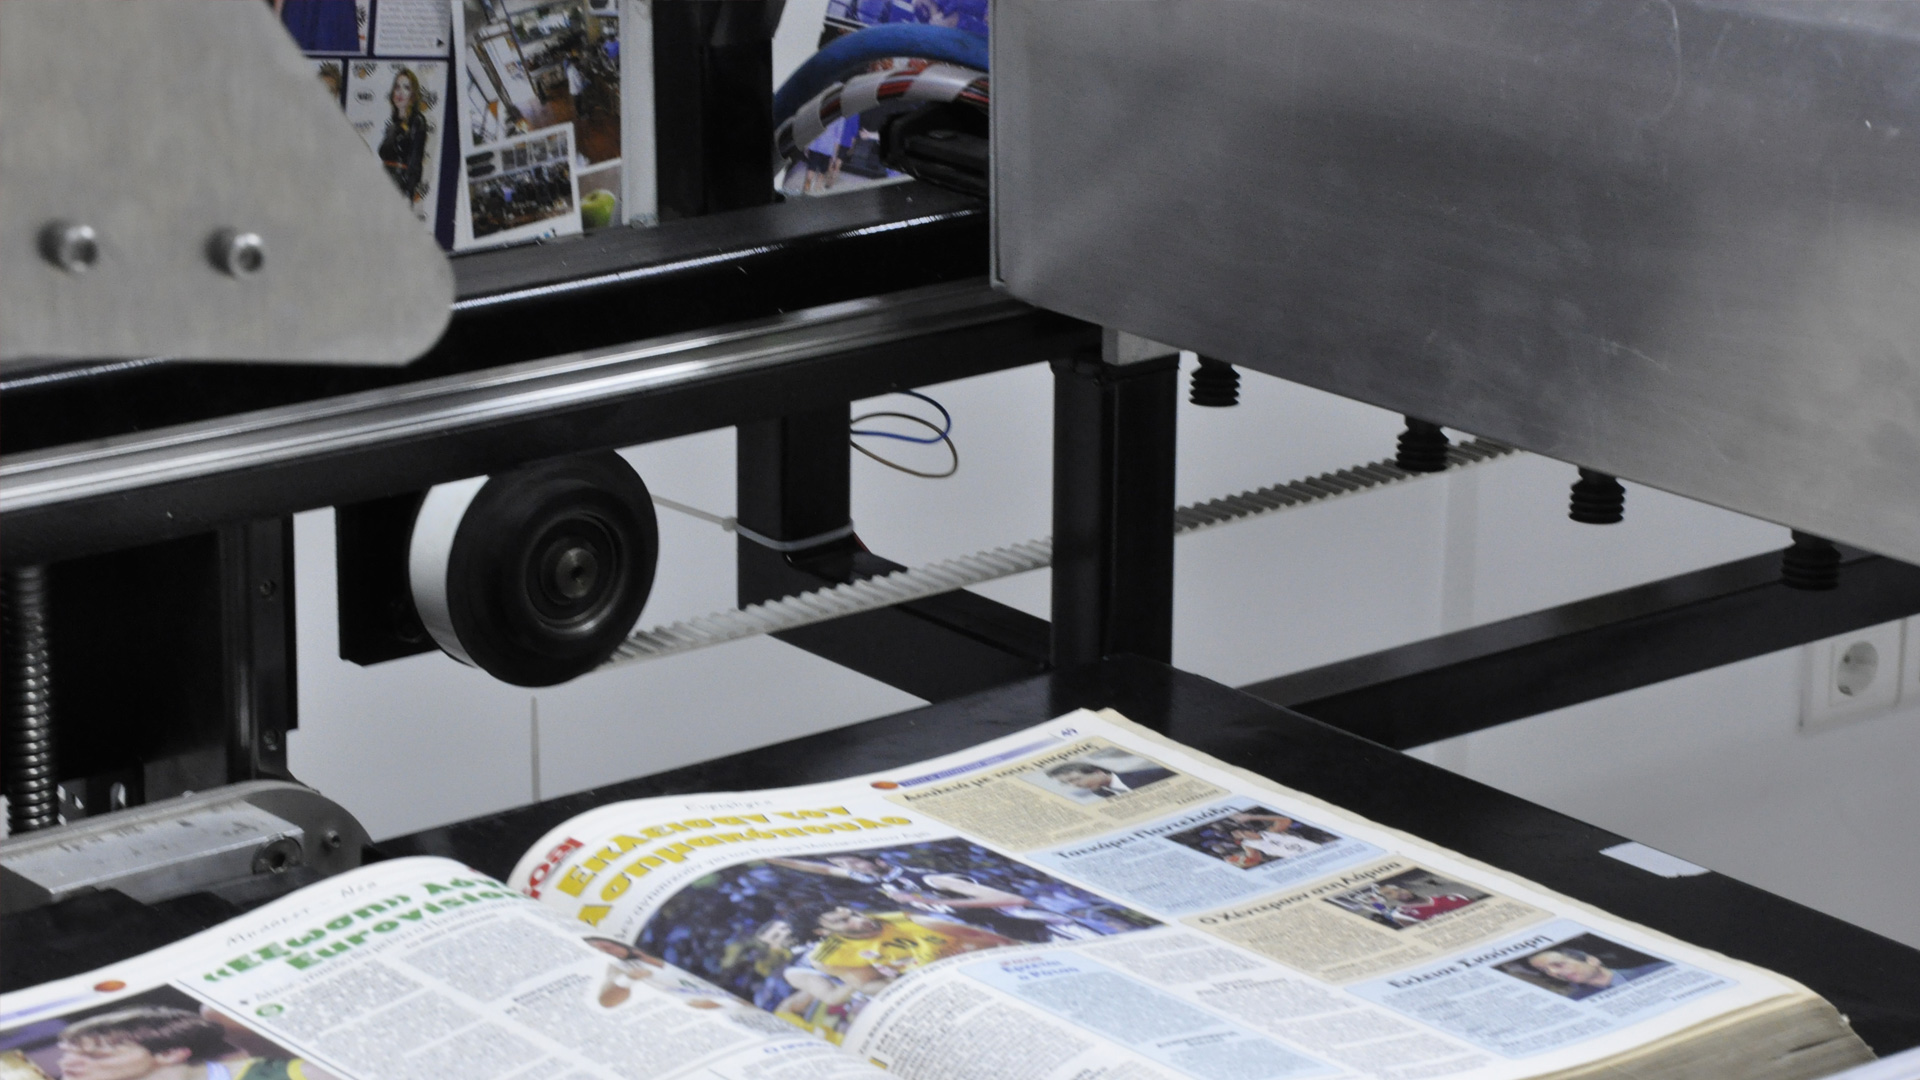 Bookscanner system synchronizing component movements